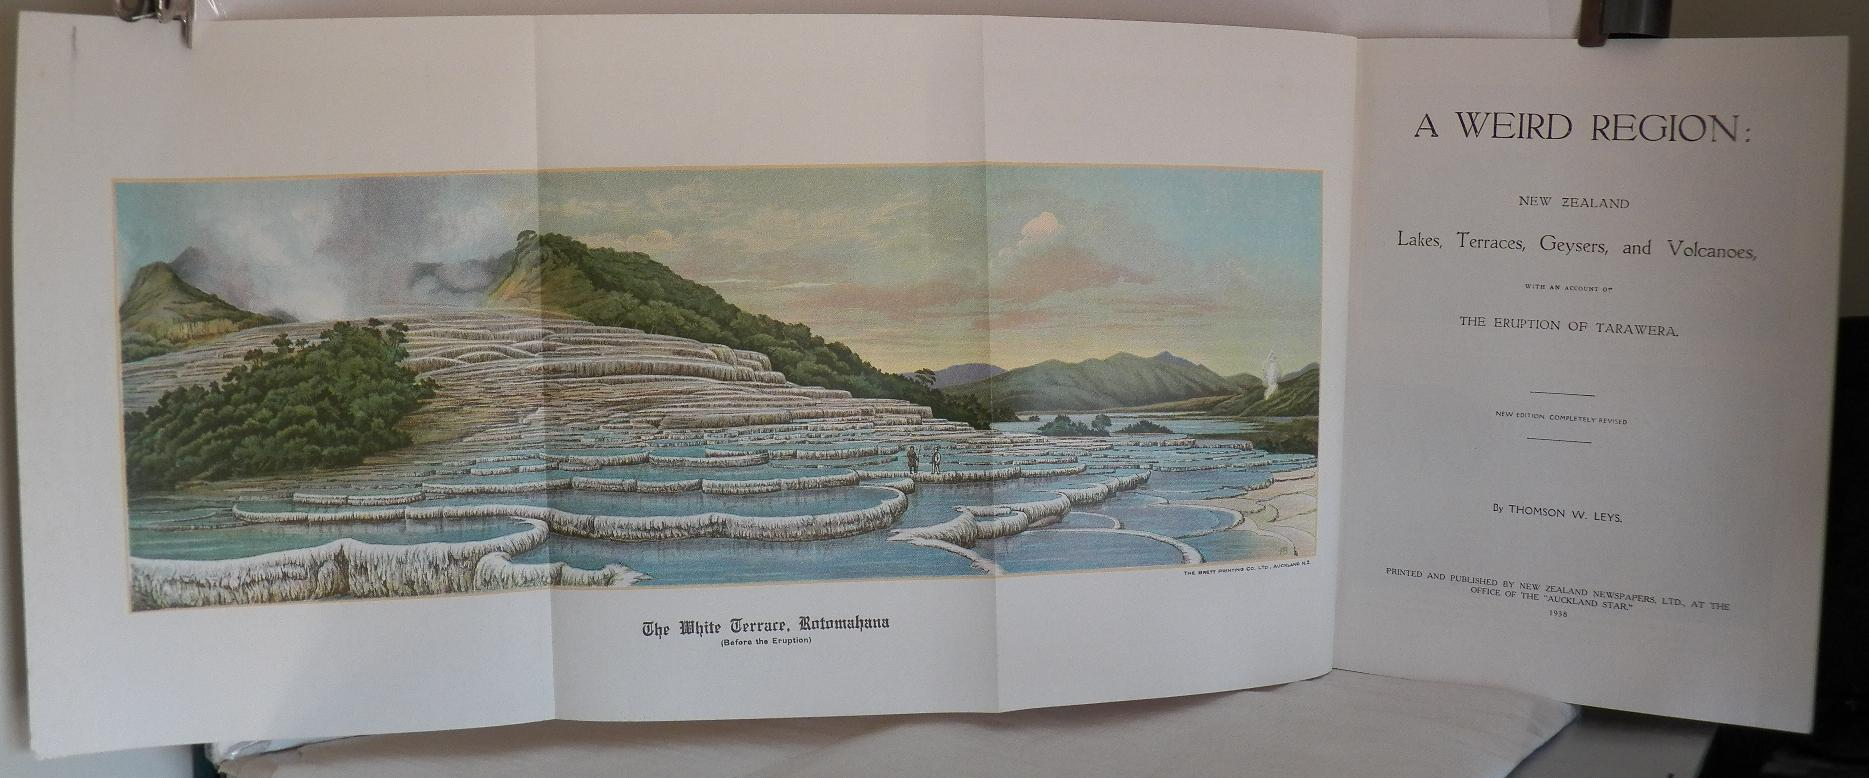 cover image of A Weird Region; New Zealand Lakes, Terraces, Geysers, and Volcanoes, with an account of the eruption of Tarawera fold out colour plate